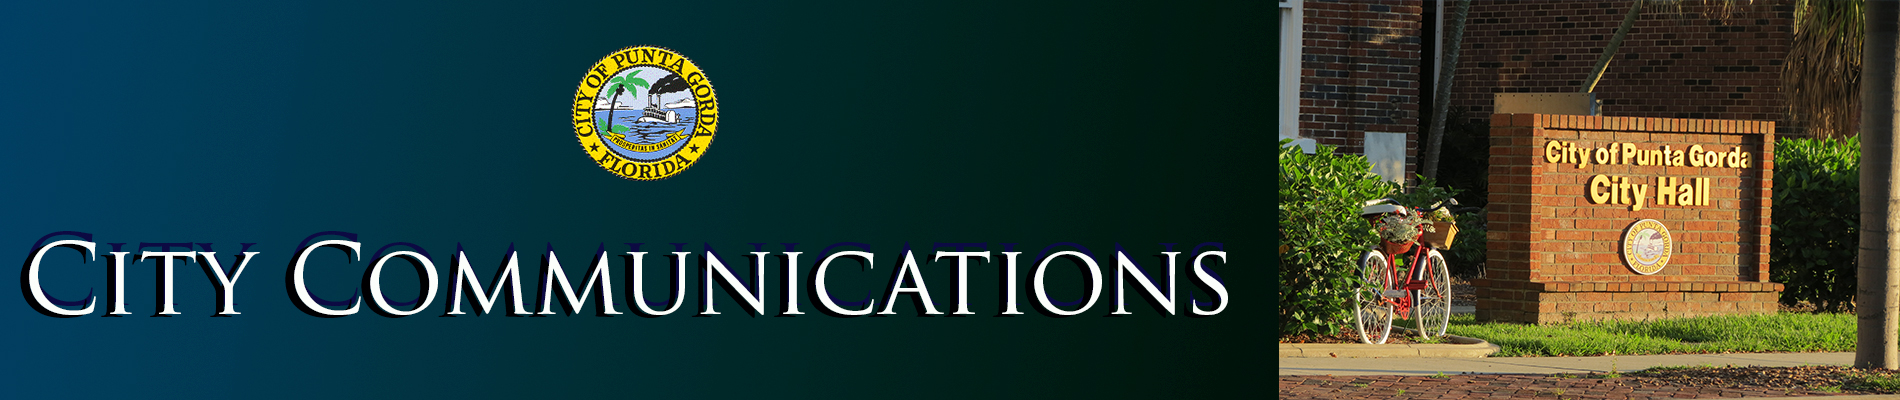 Image of City Logo and City Communications Banner Green